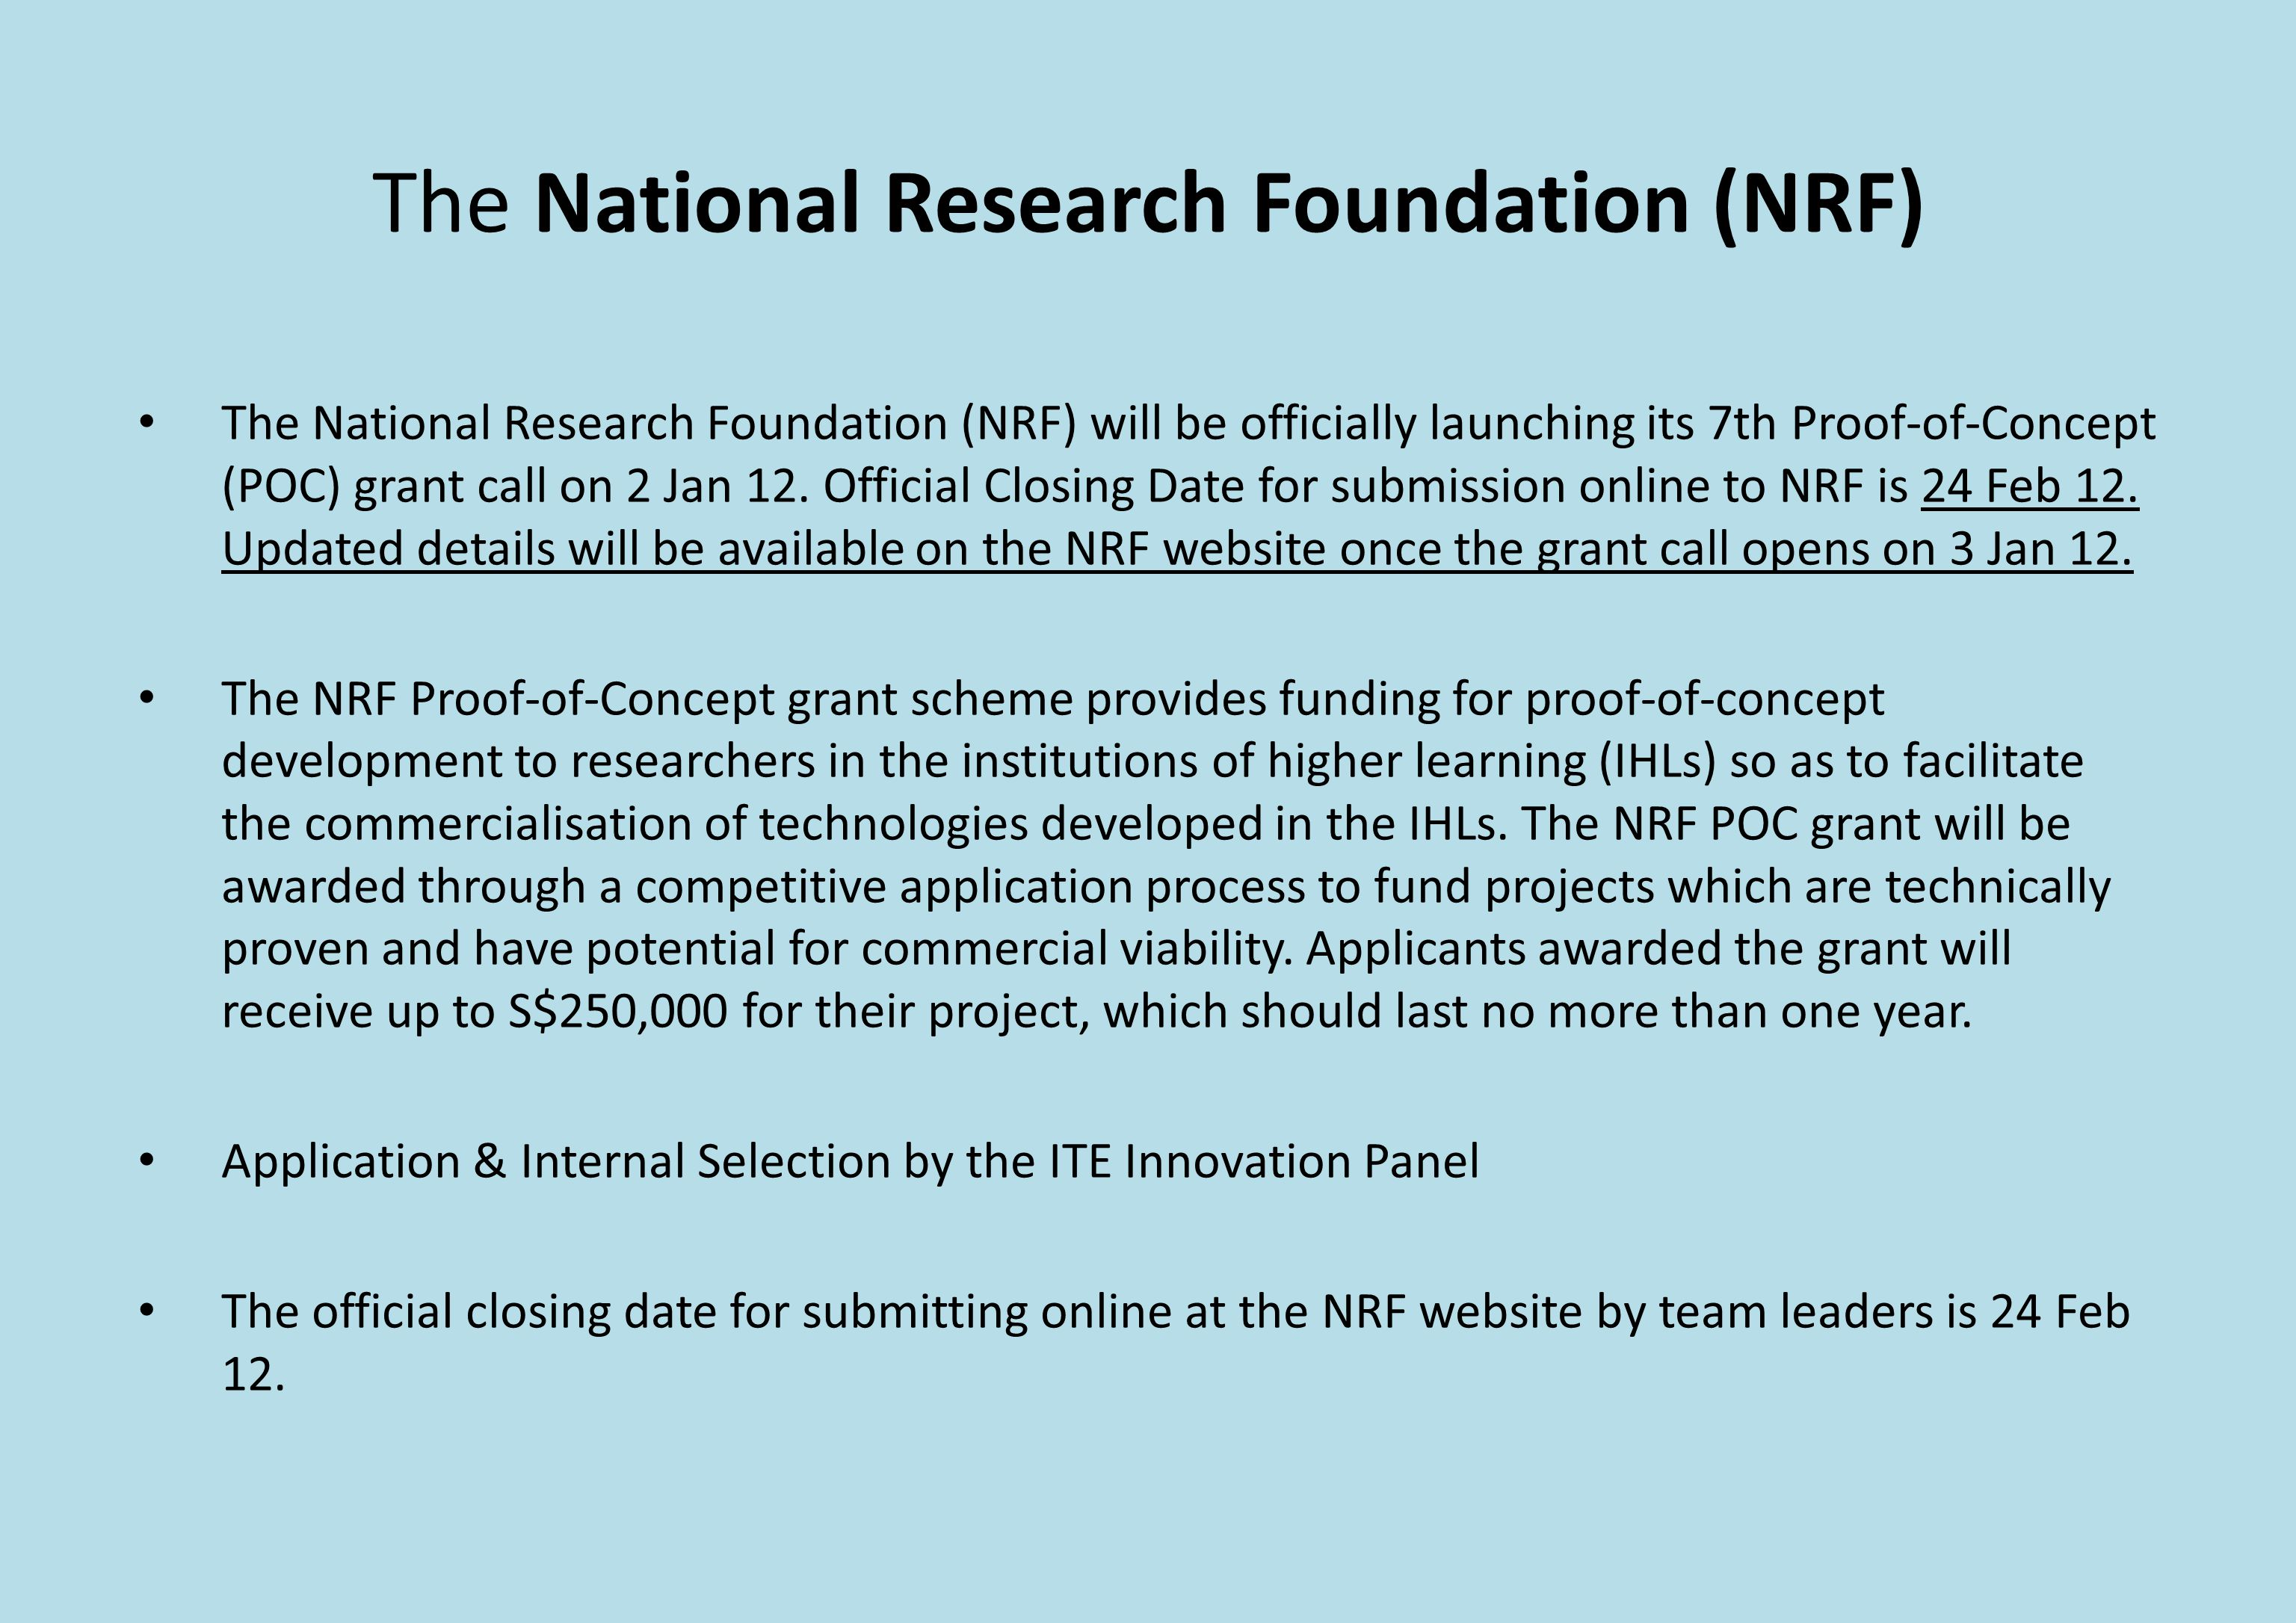 The National Research Foundation (NRF) The National Research Foundation (NRF) will be officially launching its 7th Proof-of-Concept (POC) grant call on 2 Jan 12.